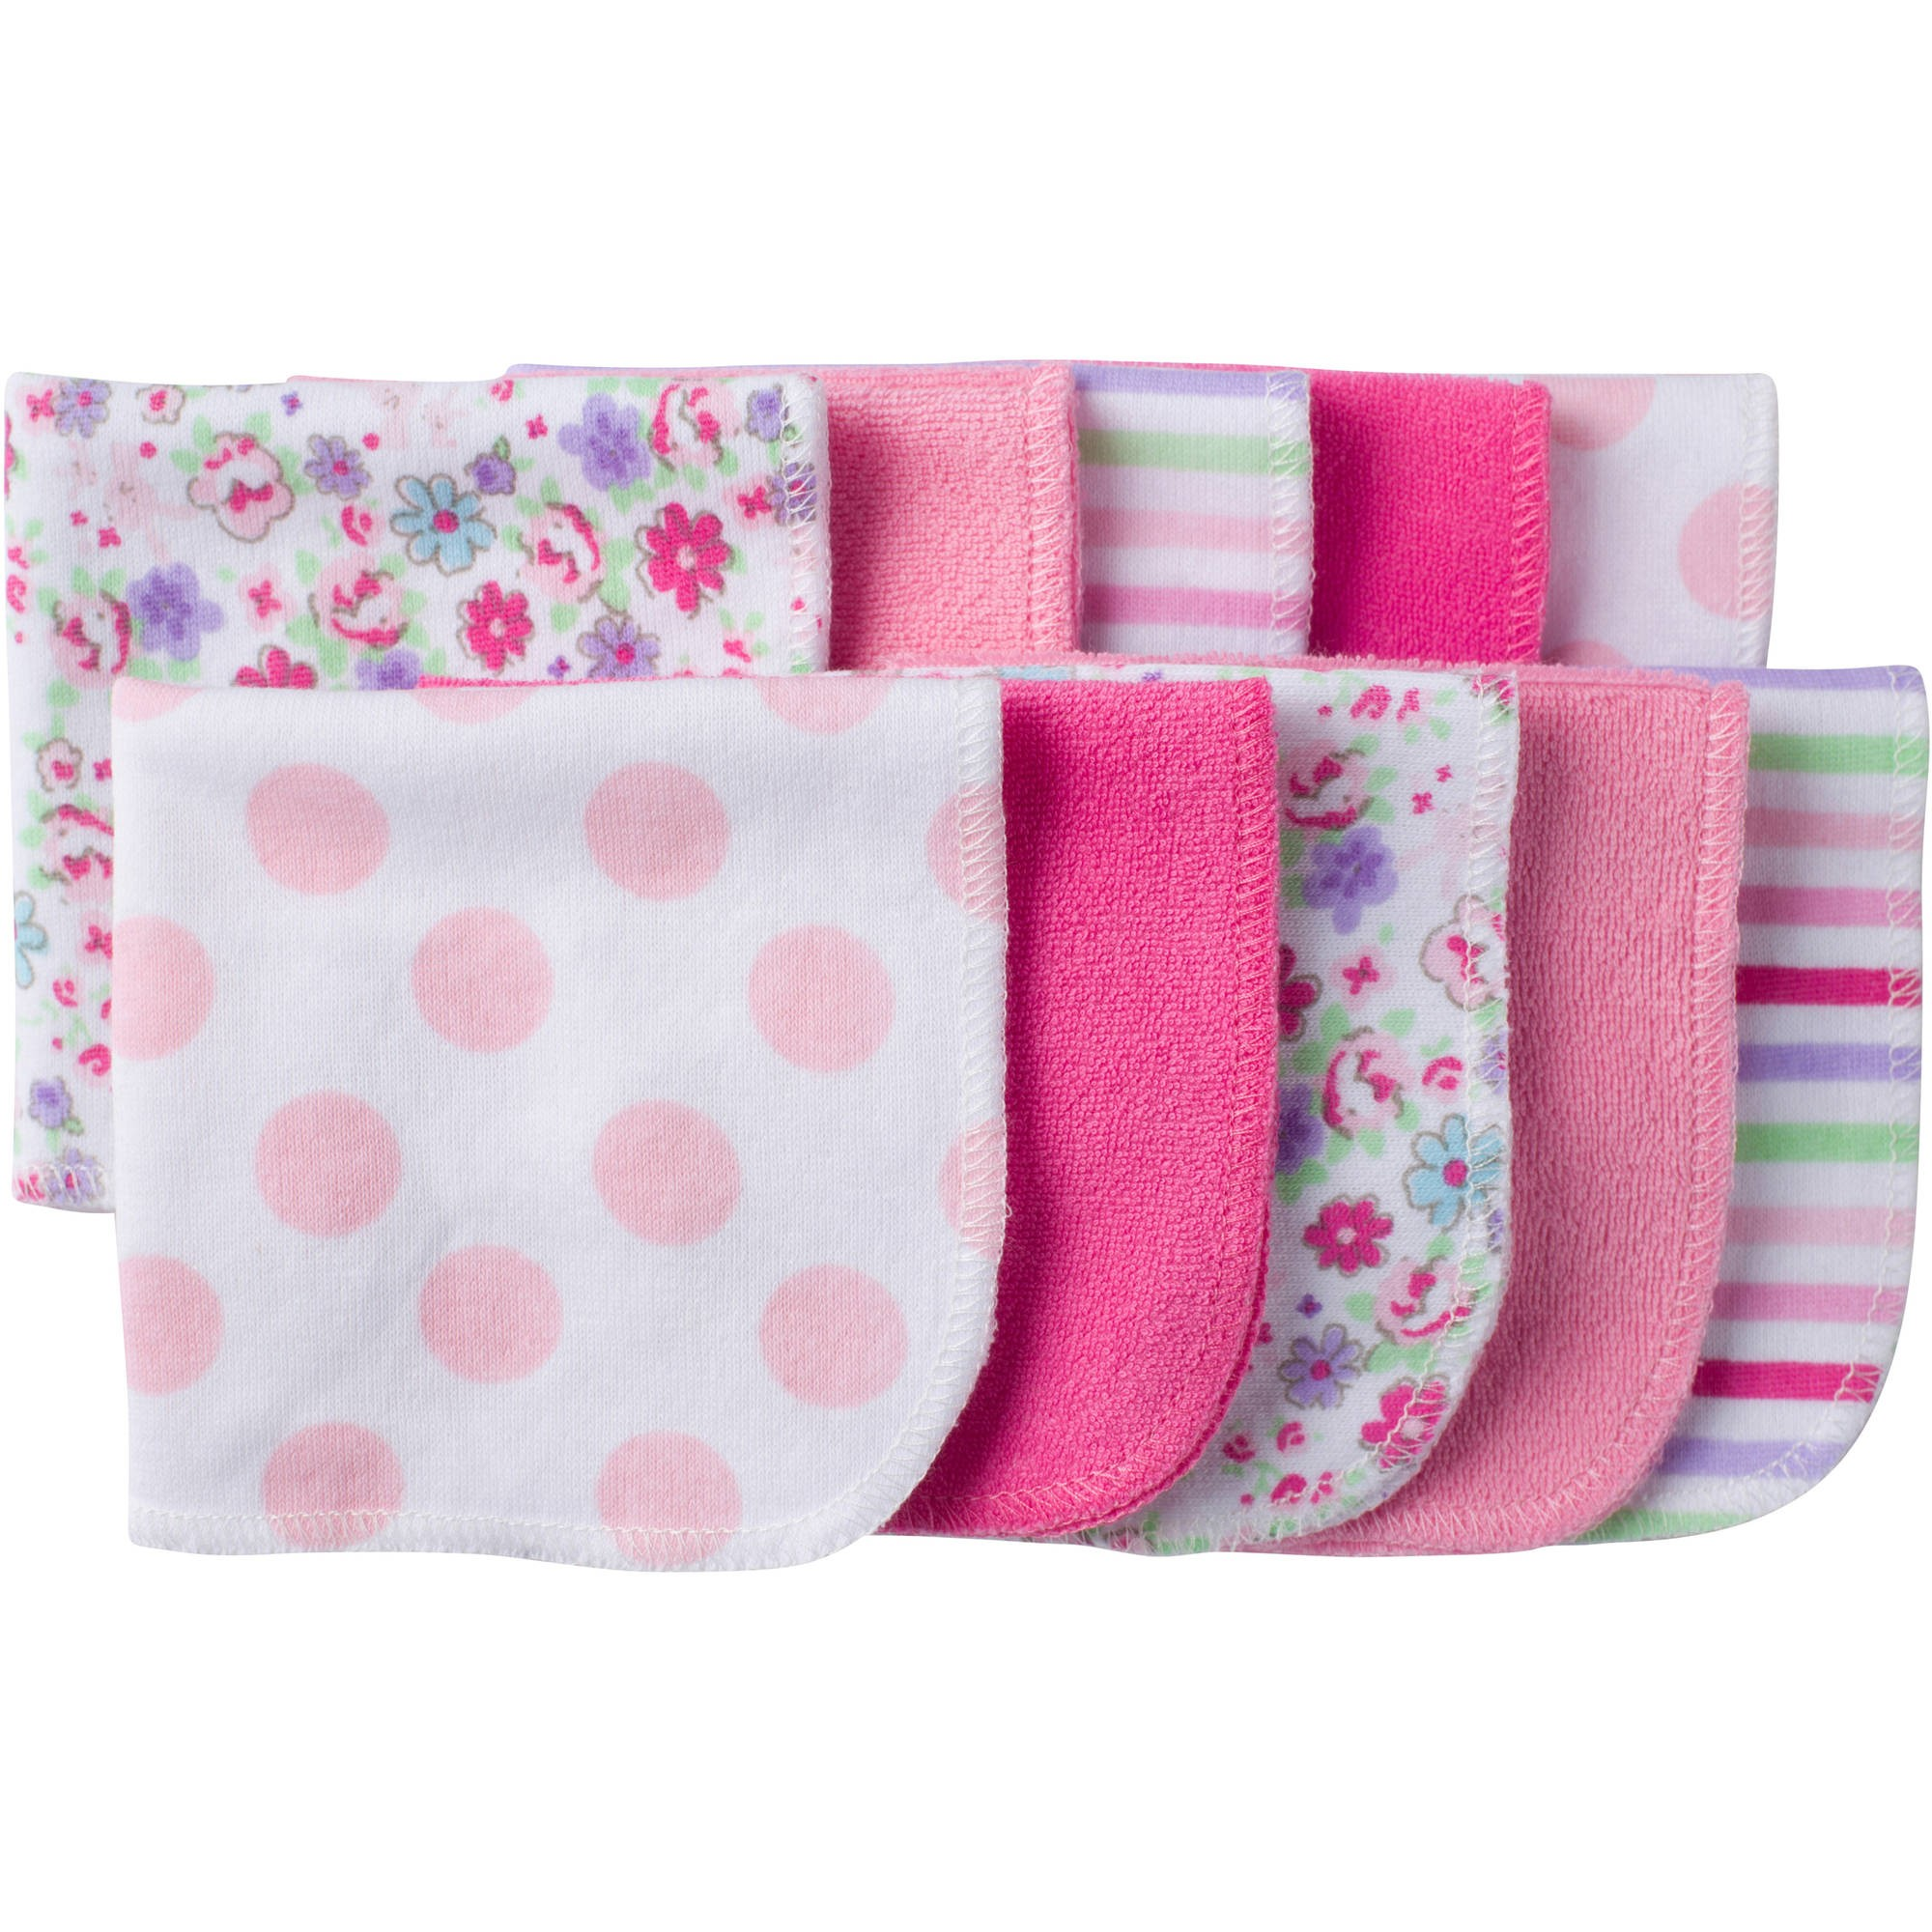 Newborn Baby Girl Assorted Terry Printed Washcloths, 10 Pack